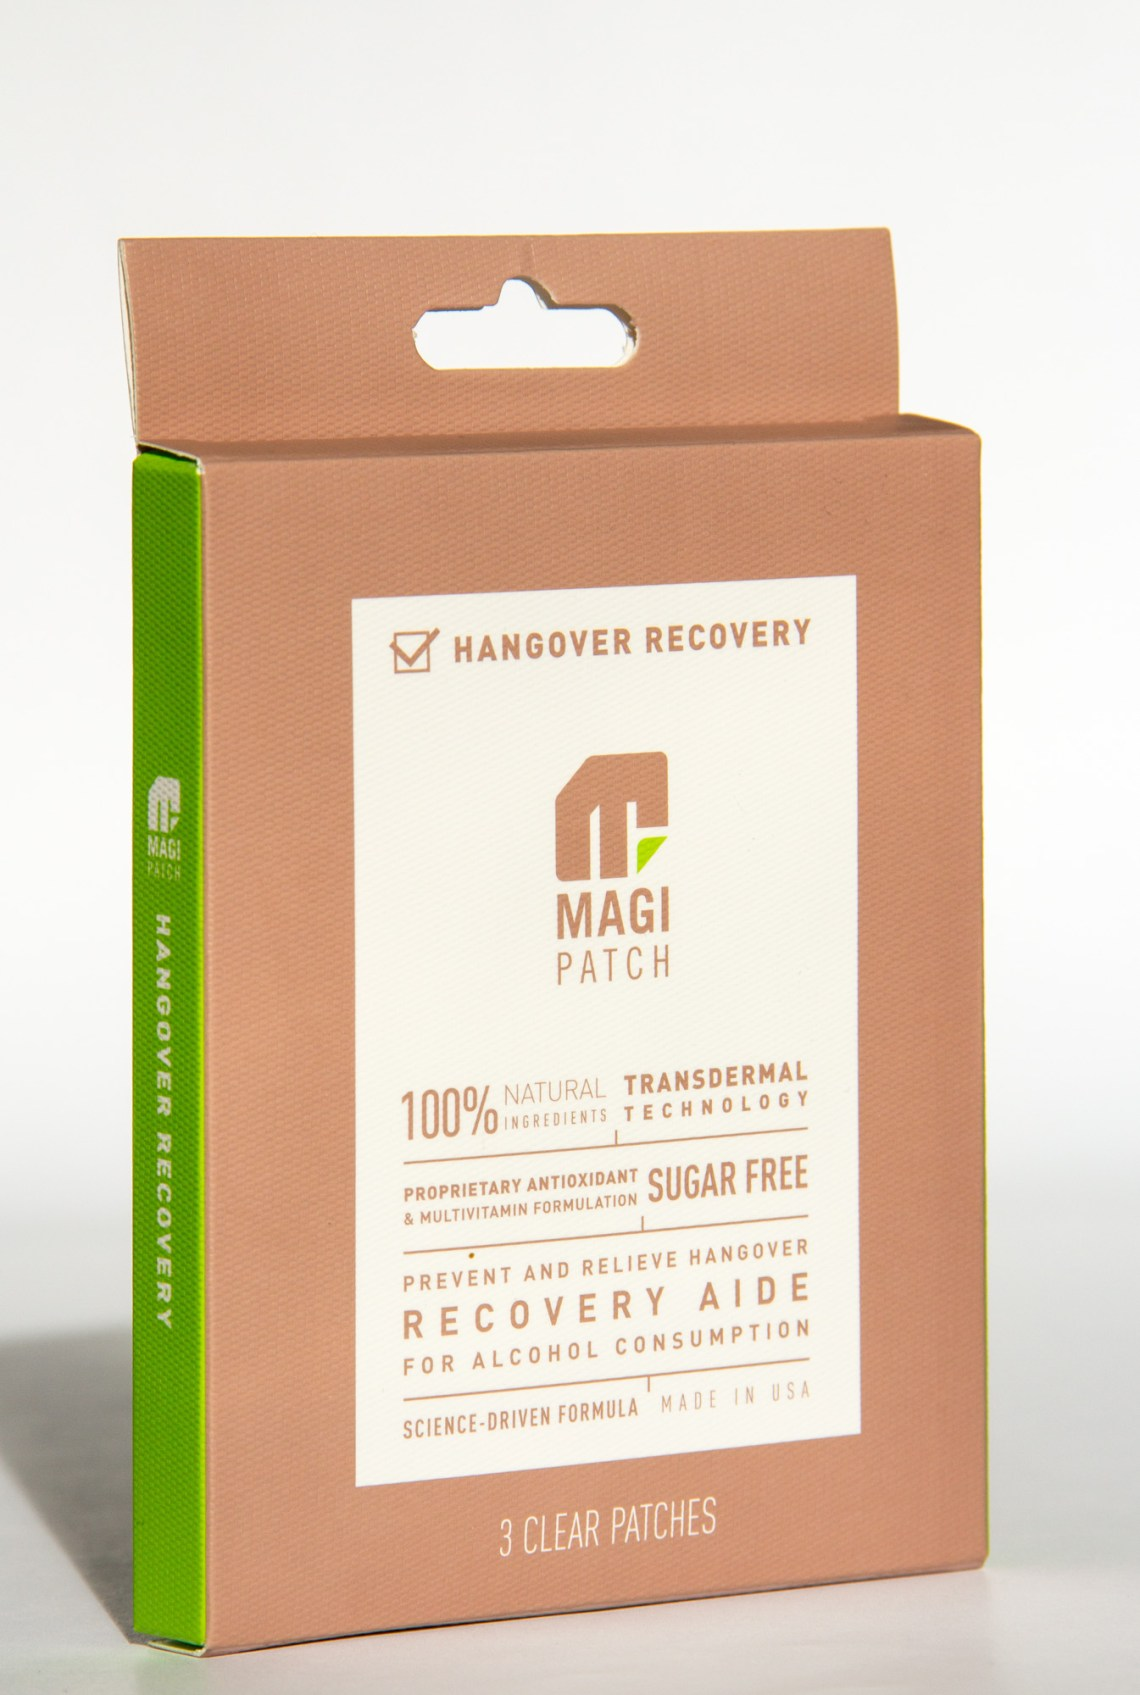 Magipatch Hangover Recovery Patch